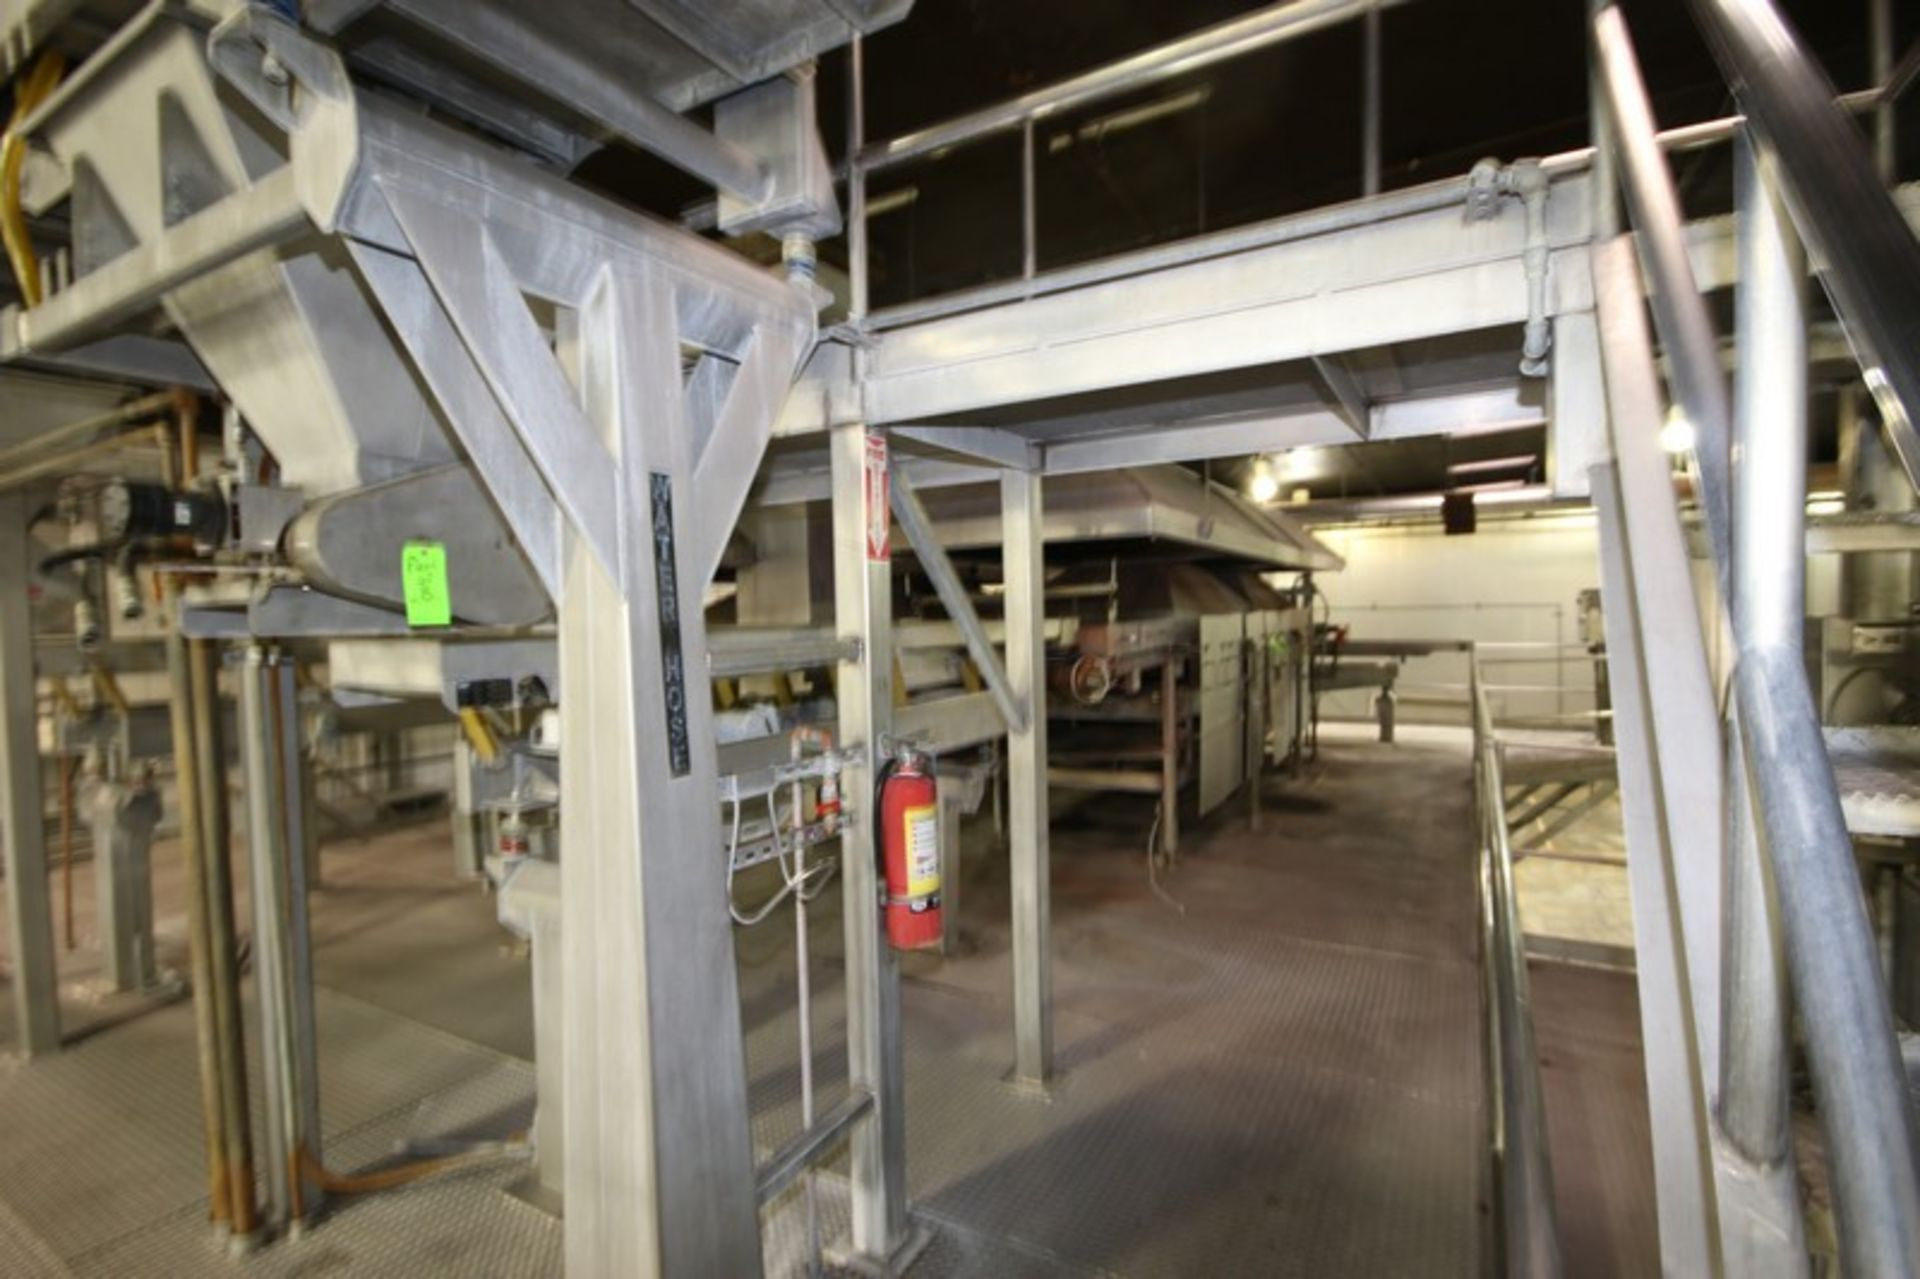 Lot 7 - BULK BID: Key S/S Spreader Shaker Feed System, with Natural Gas Roaster #2, Includes Lots 8 & 9